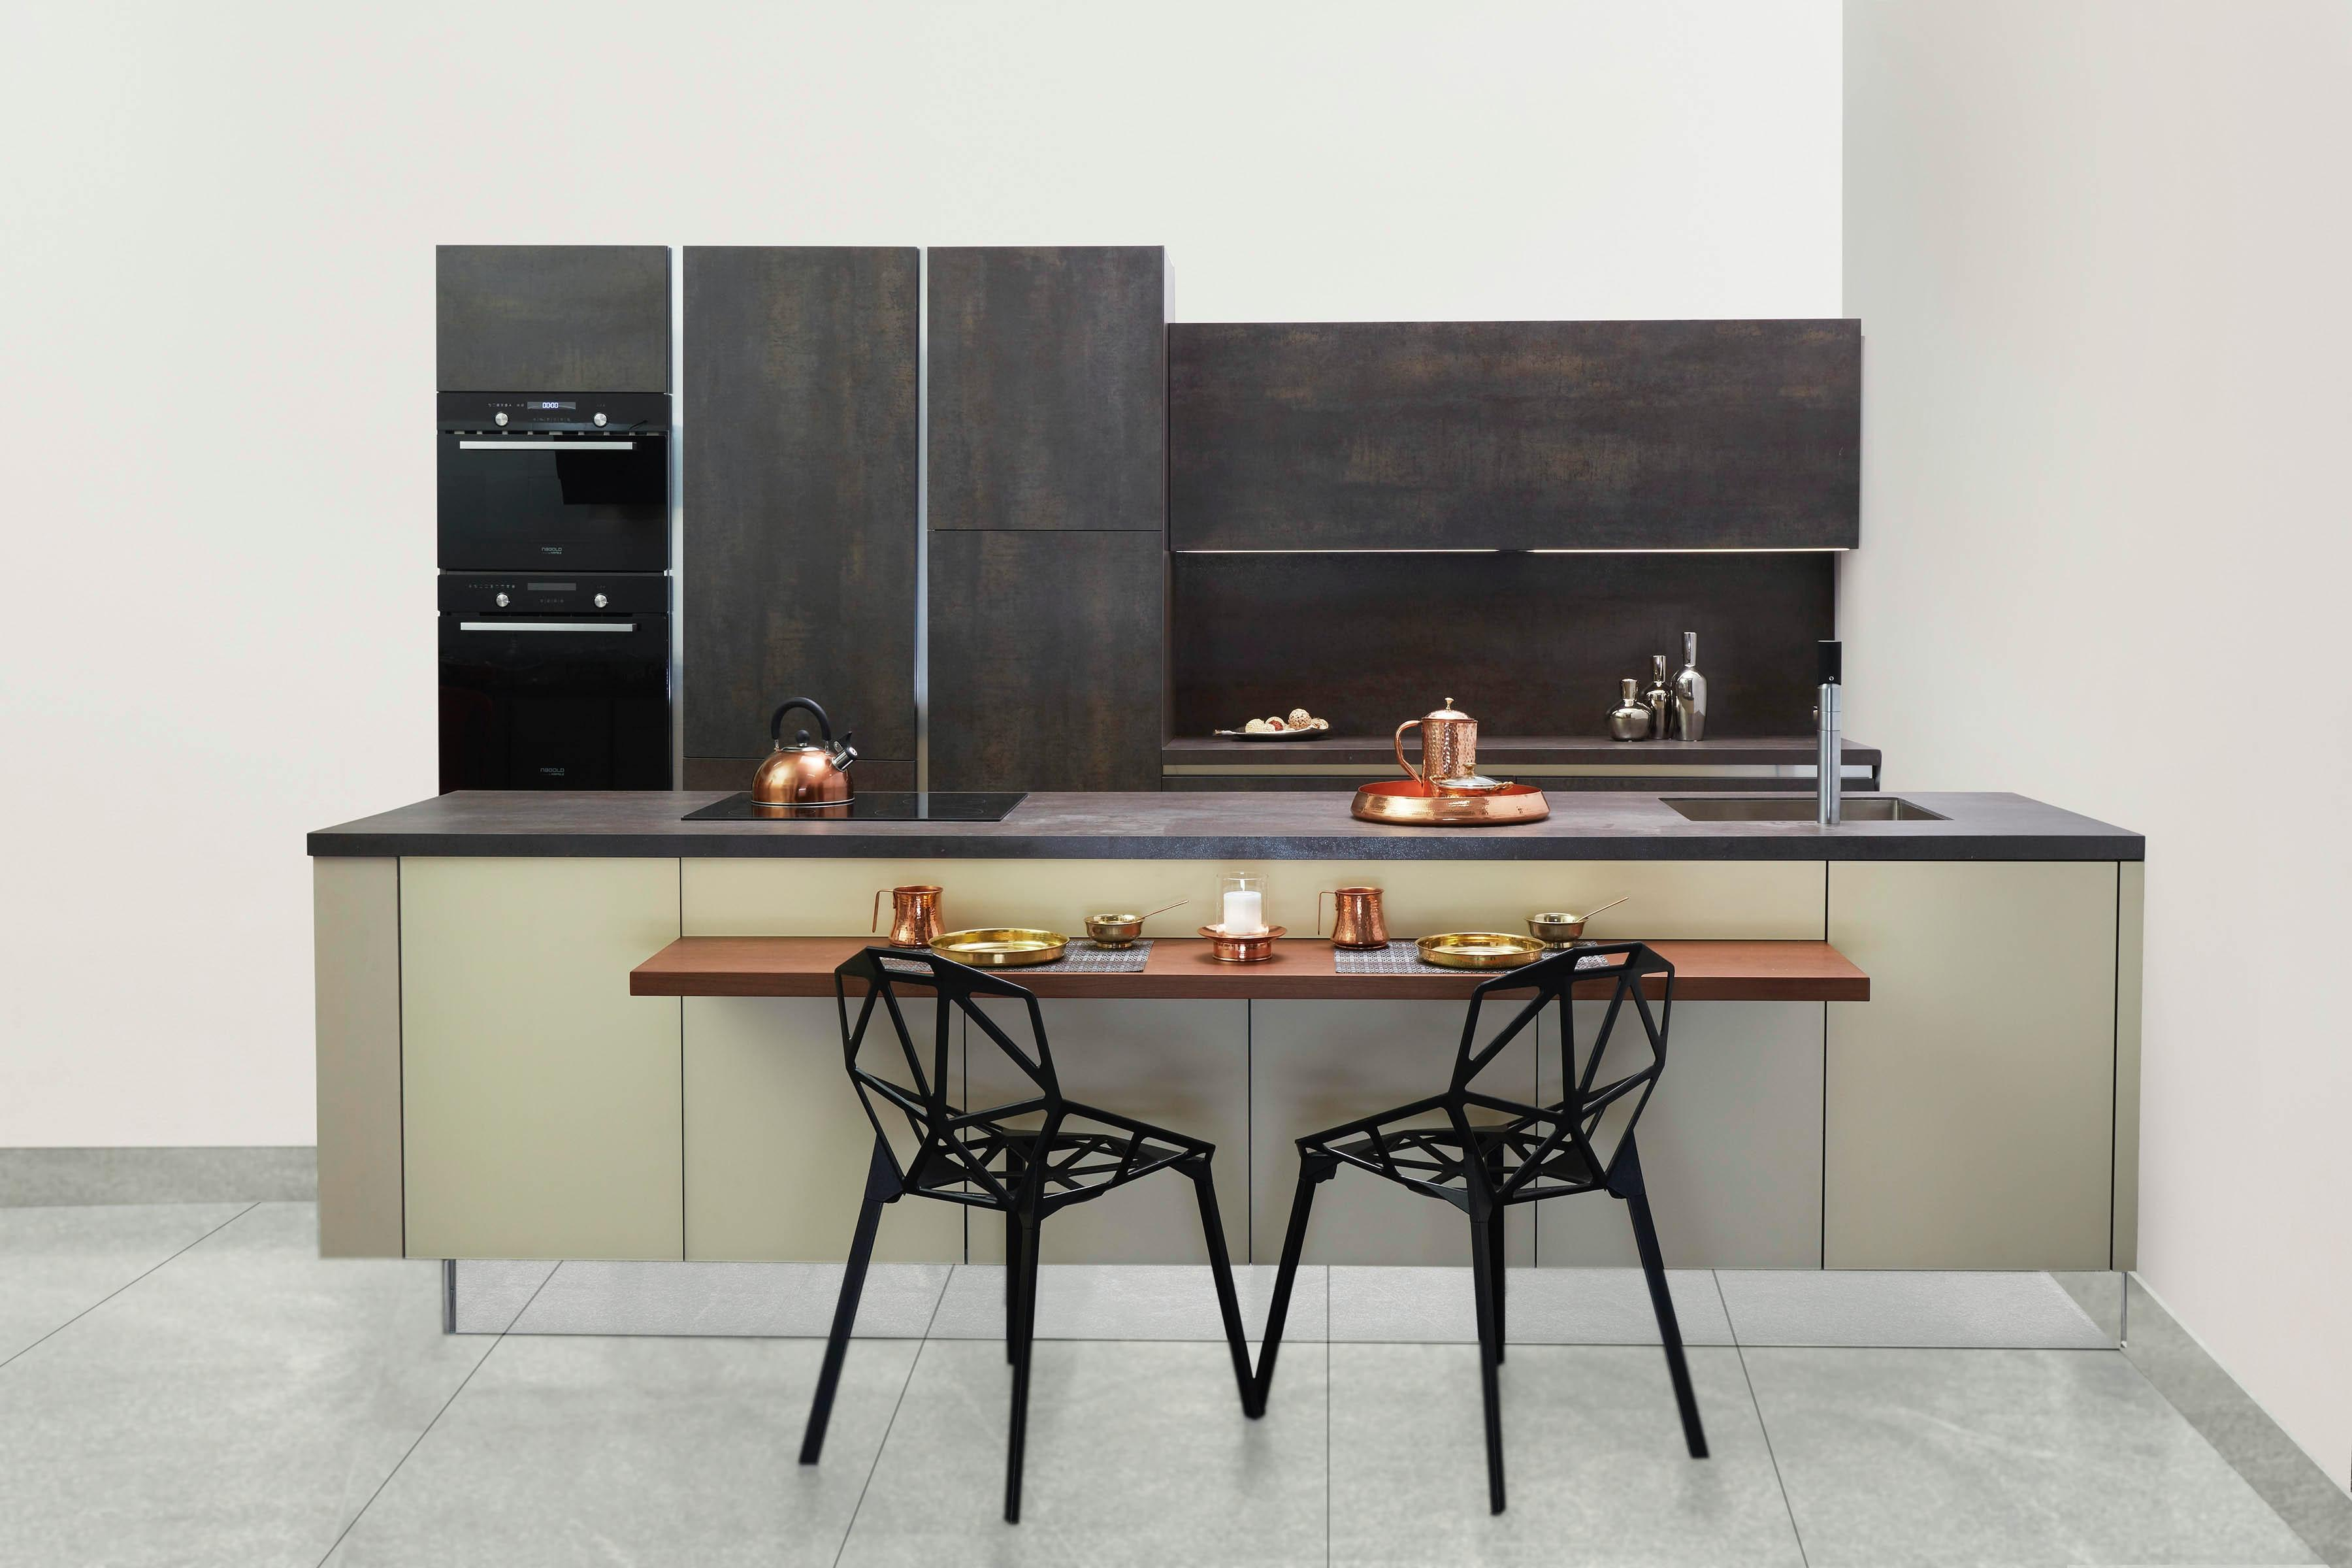 What is Modular kitchens